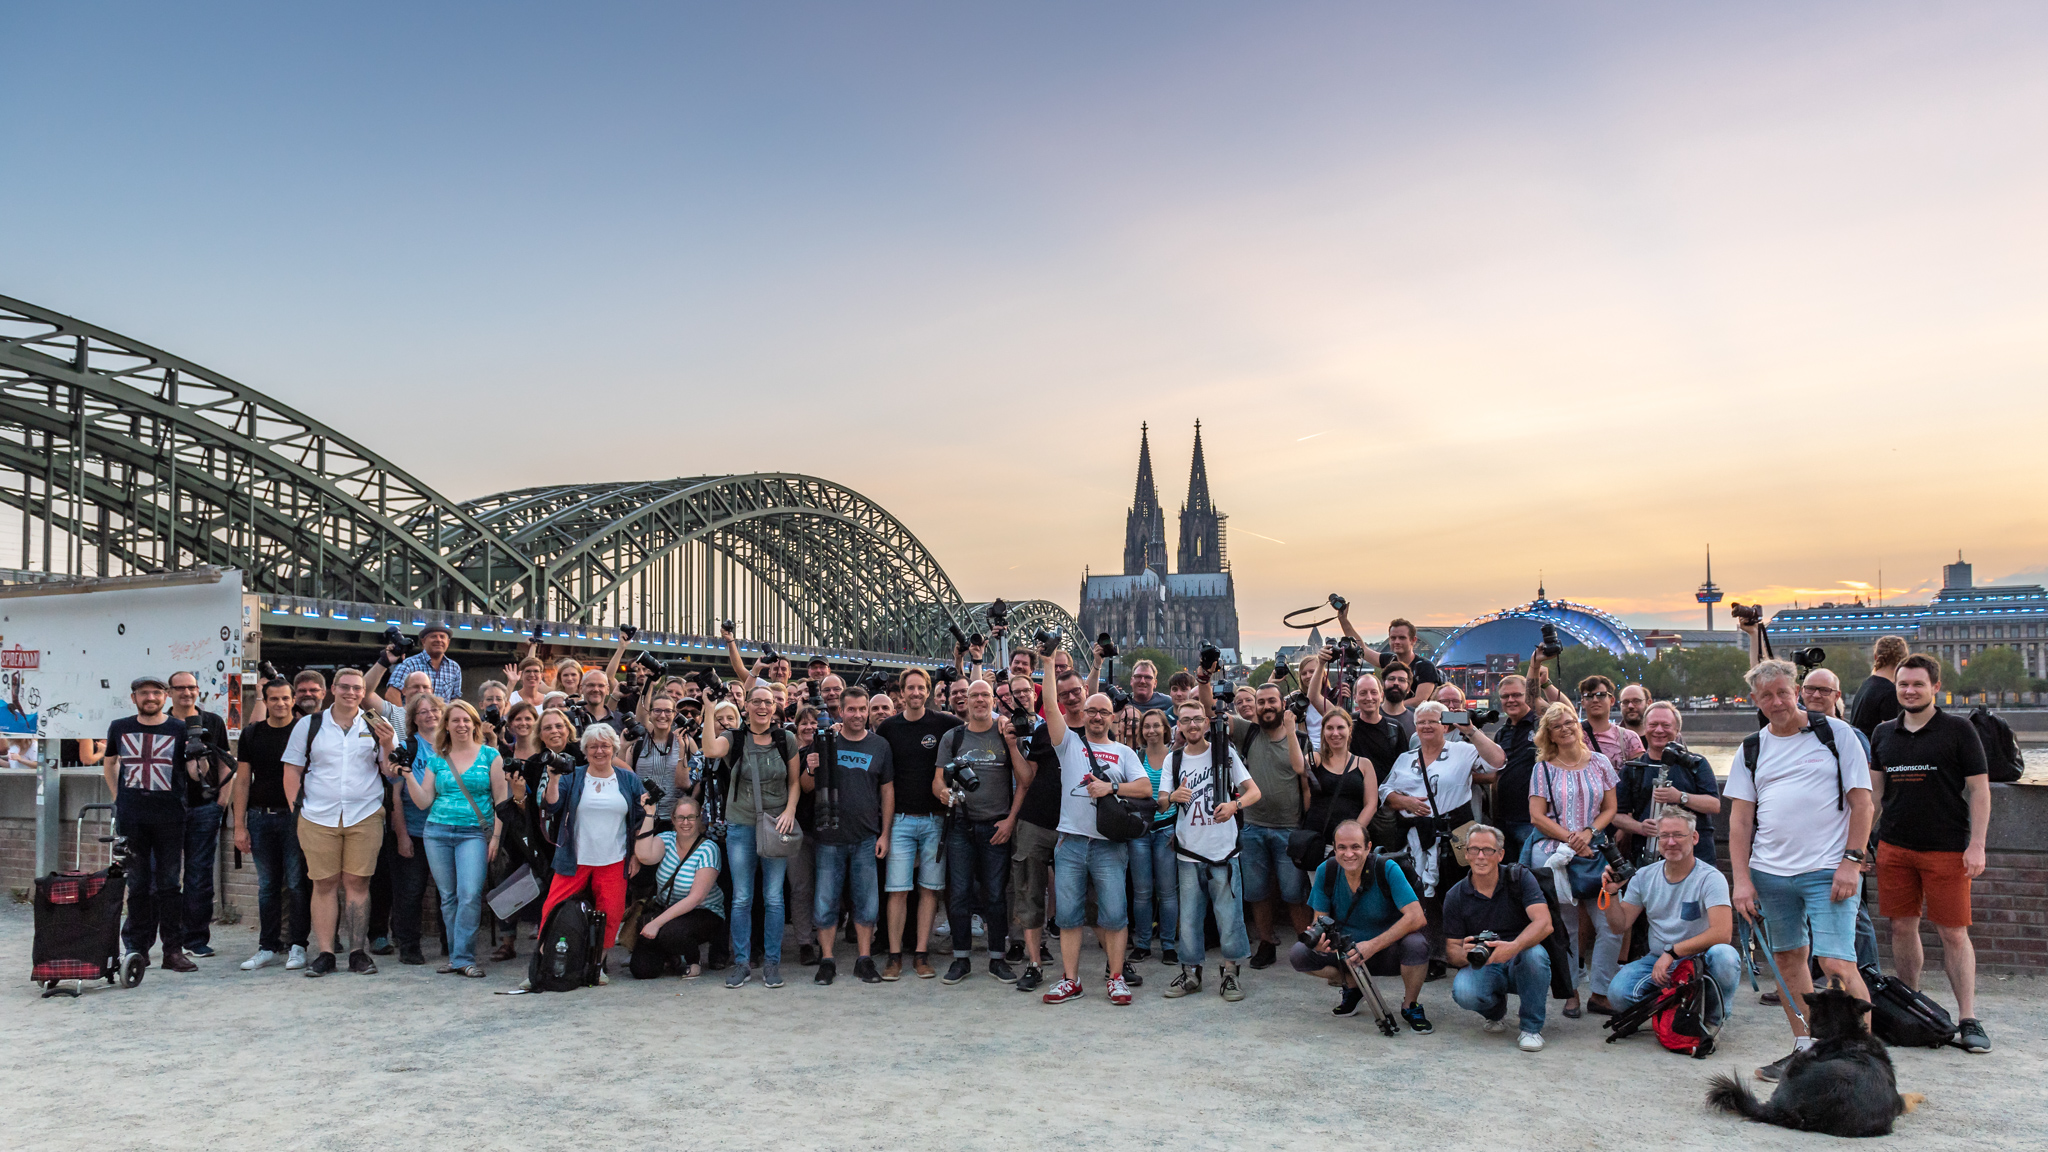 18 Photowalk gamescom light it up Gruppenbild